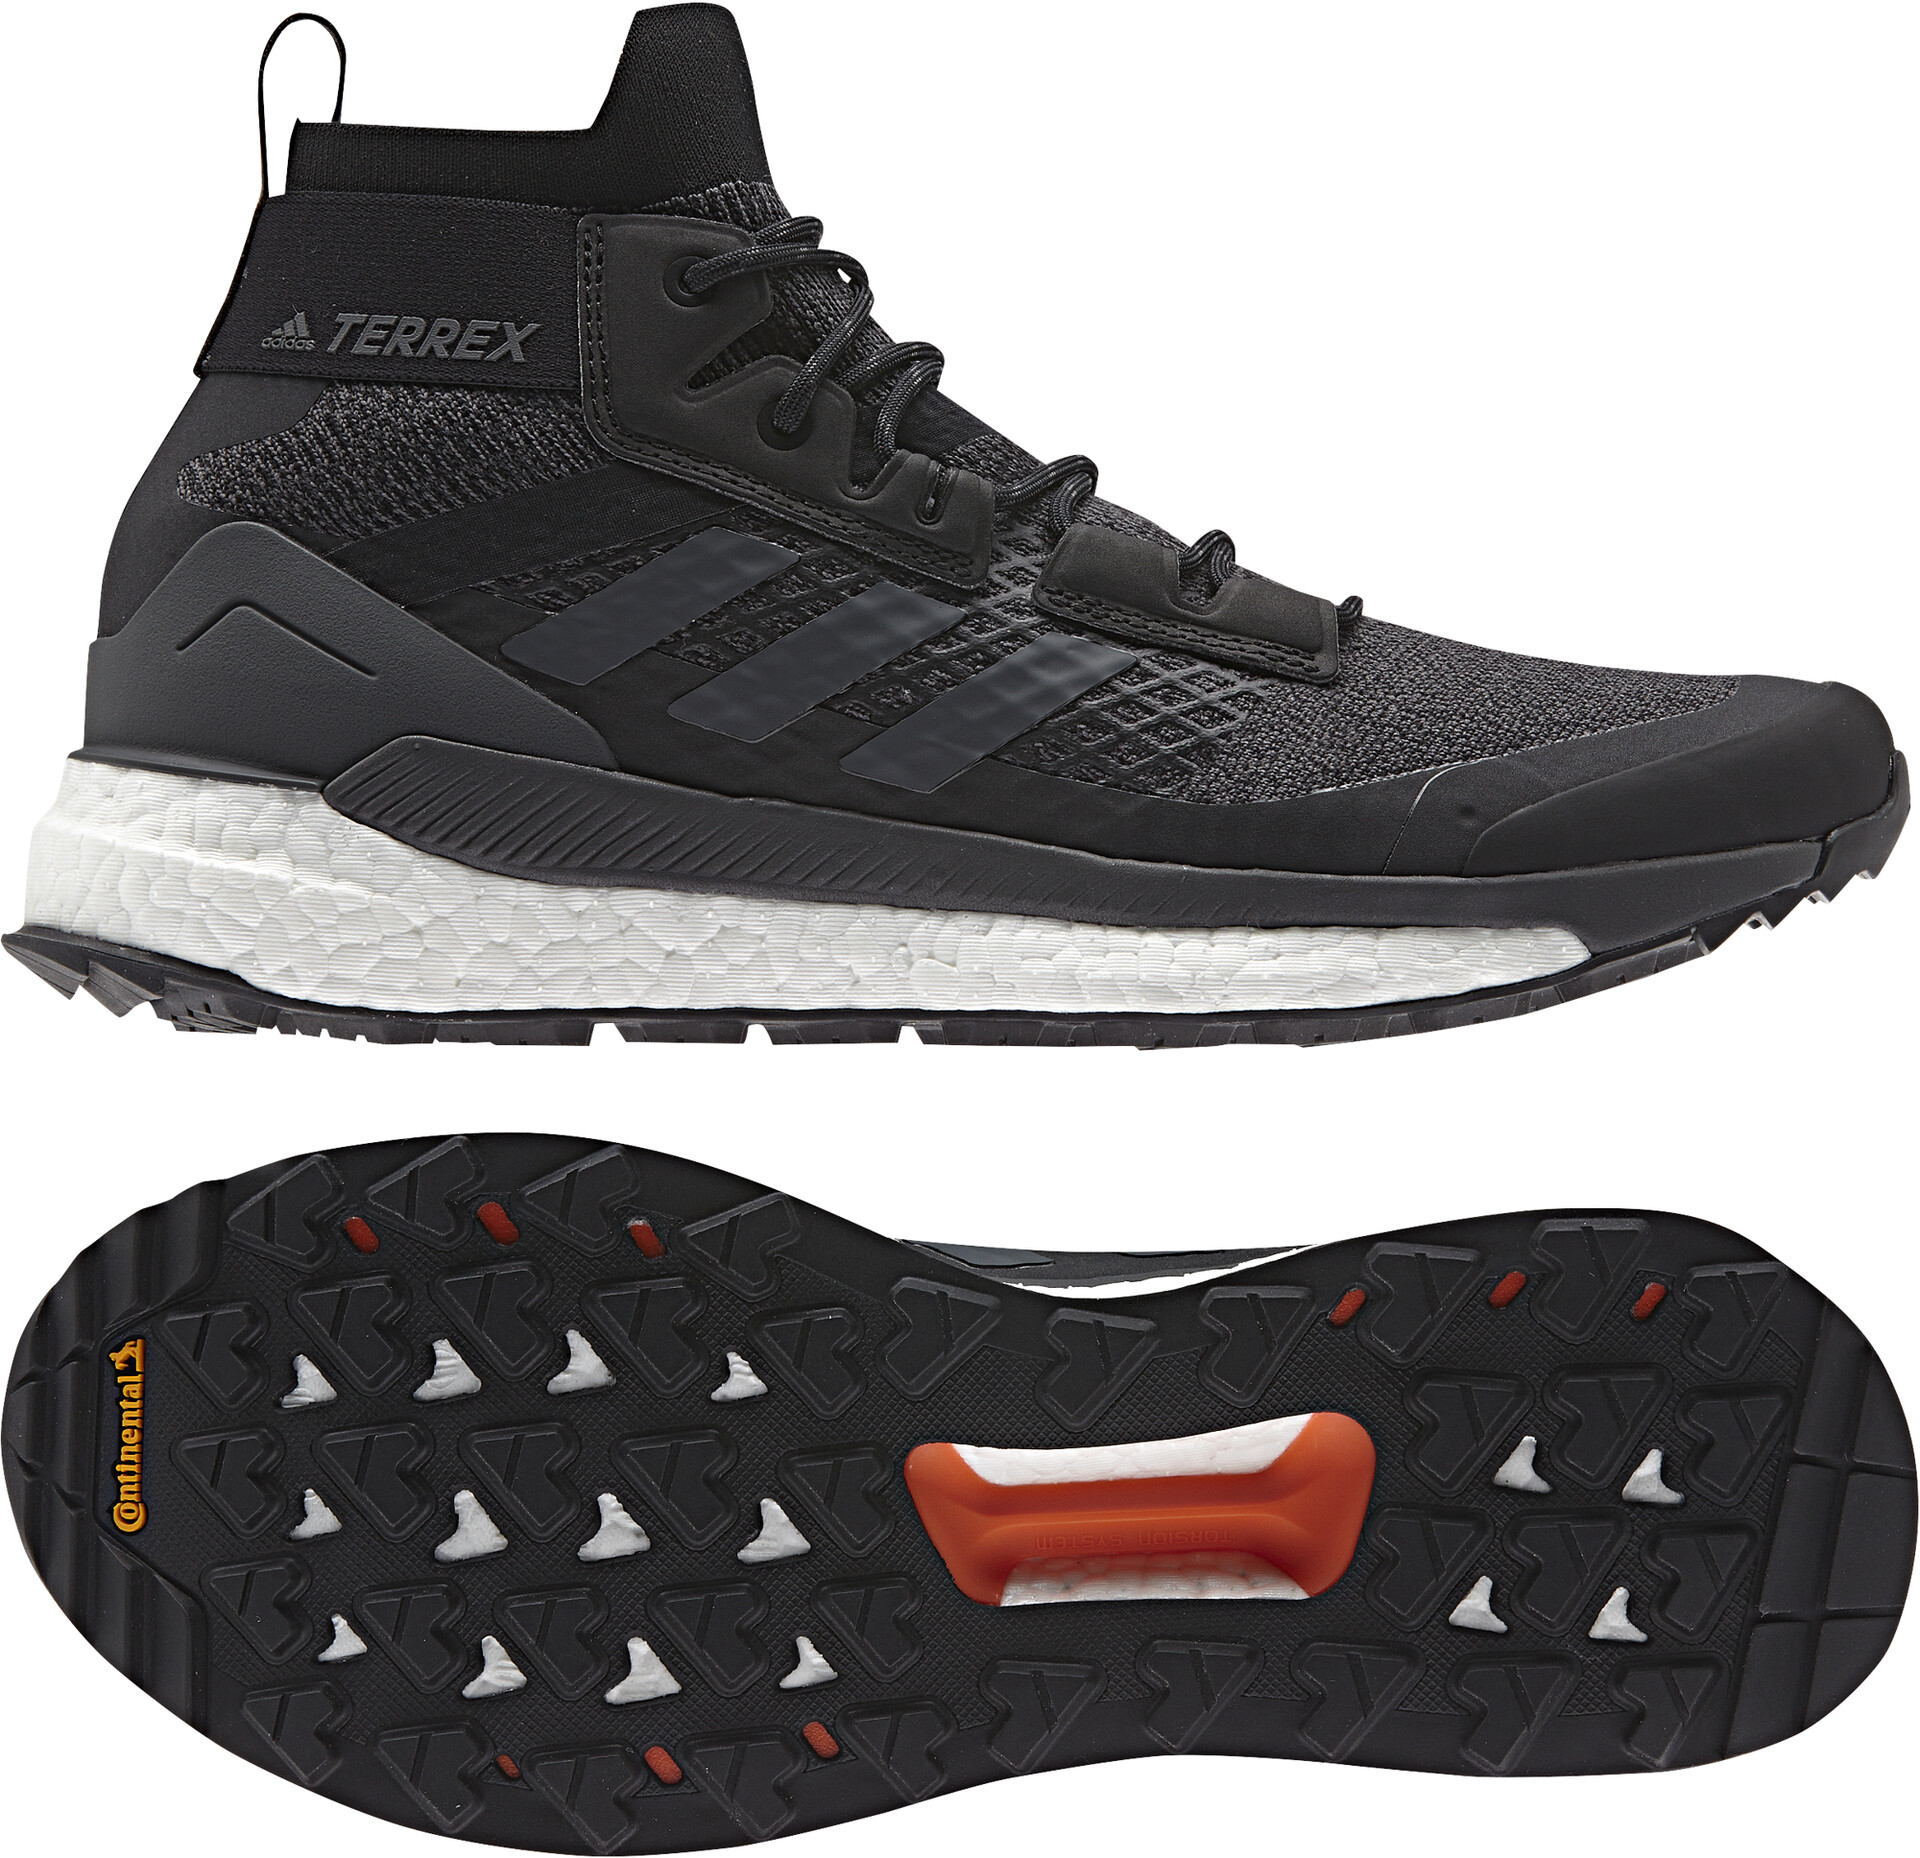 adidas TERREX Free Hiker Chaussures de randonnée Homme, core blackgrey sixactive orange